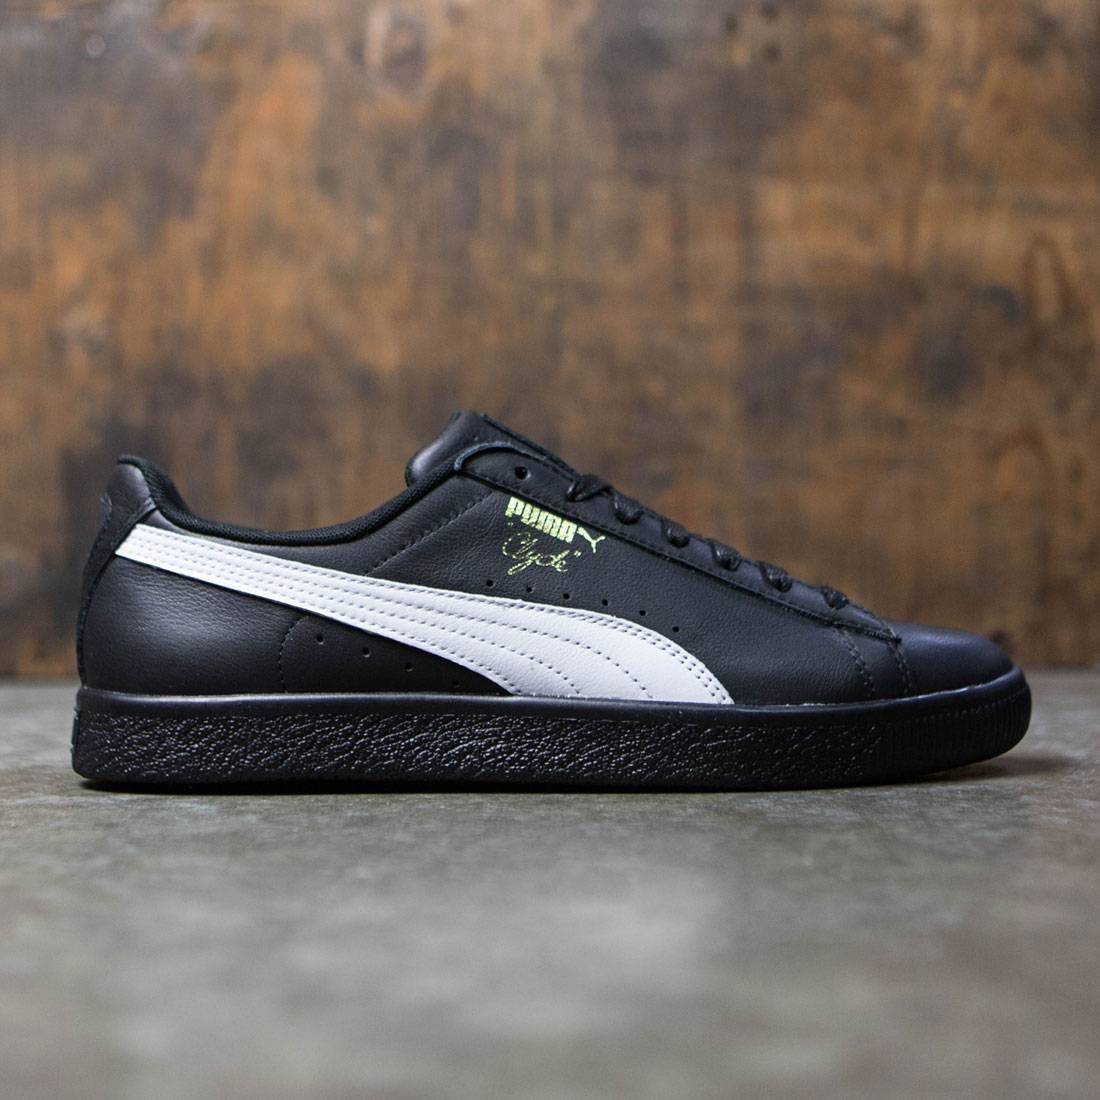 info for 1b12b 0d99a puma clyde black, Puma Shoes & Clothing - Up to 90% off ...